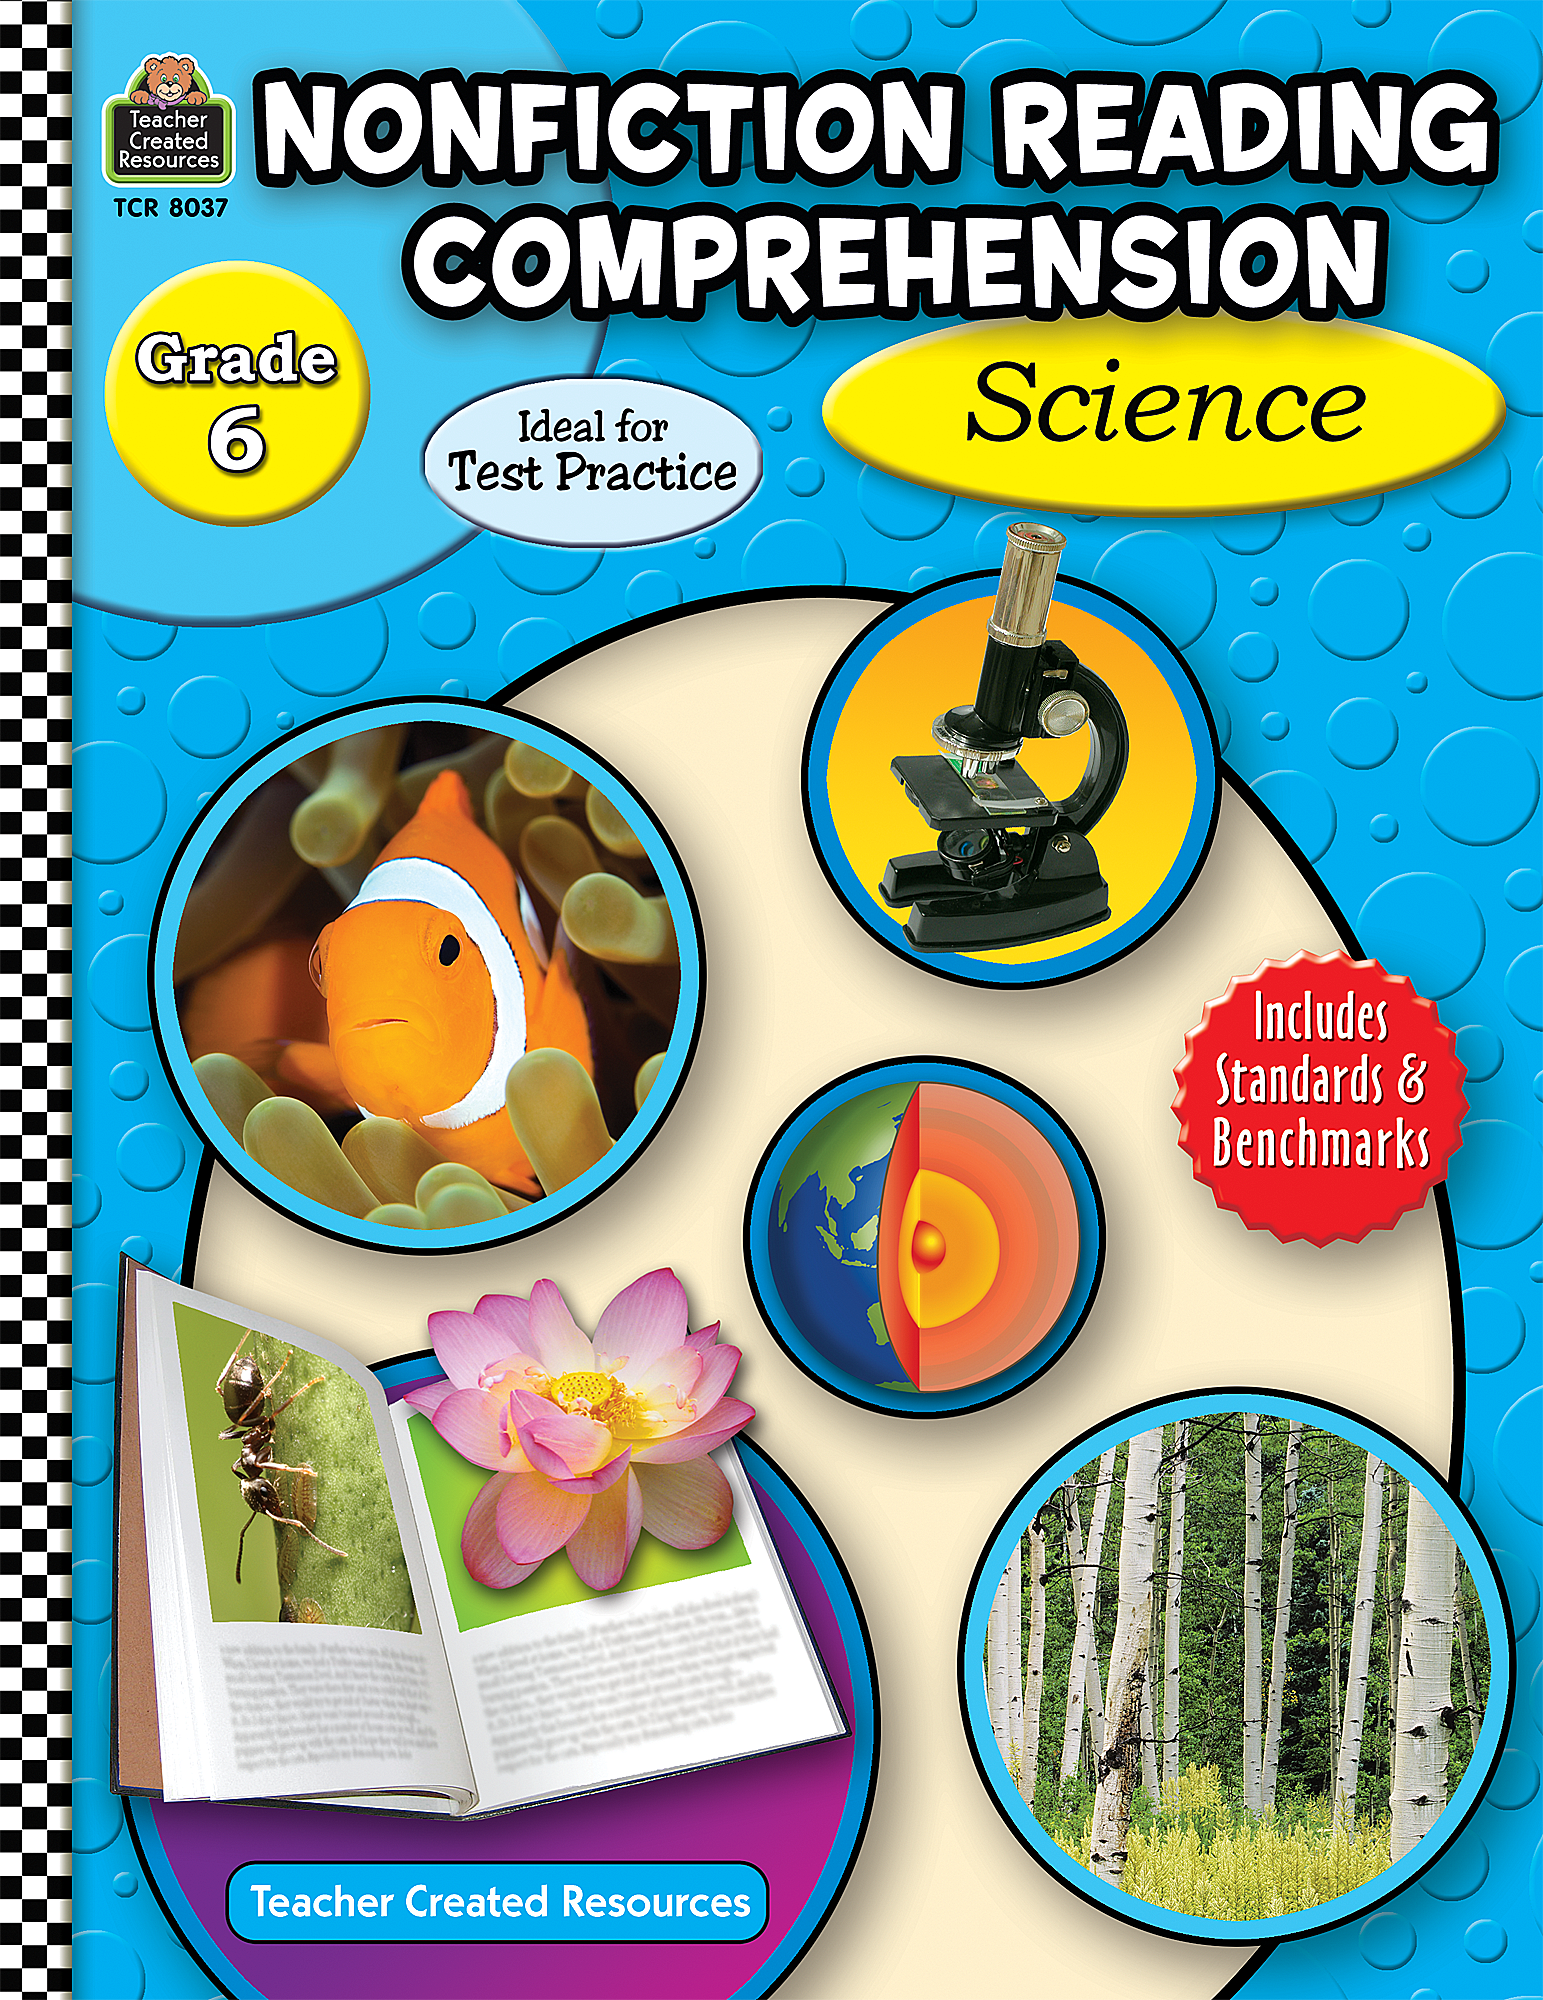 worksheet Nonfiction Reading Comprehension Worksheets nonfiction reading comprehension science grade 6 tcr8037 teacher created resources